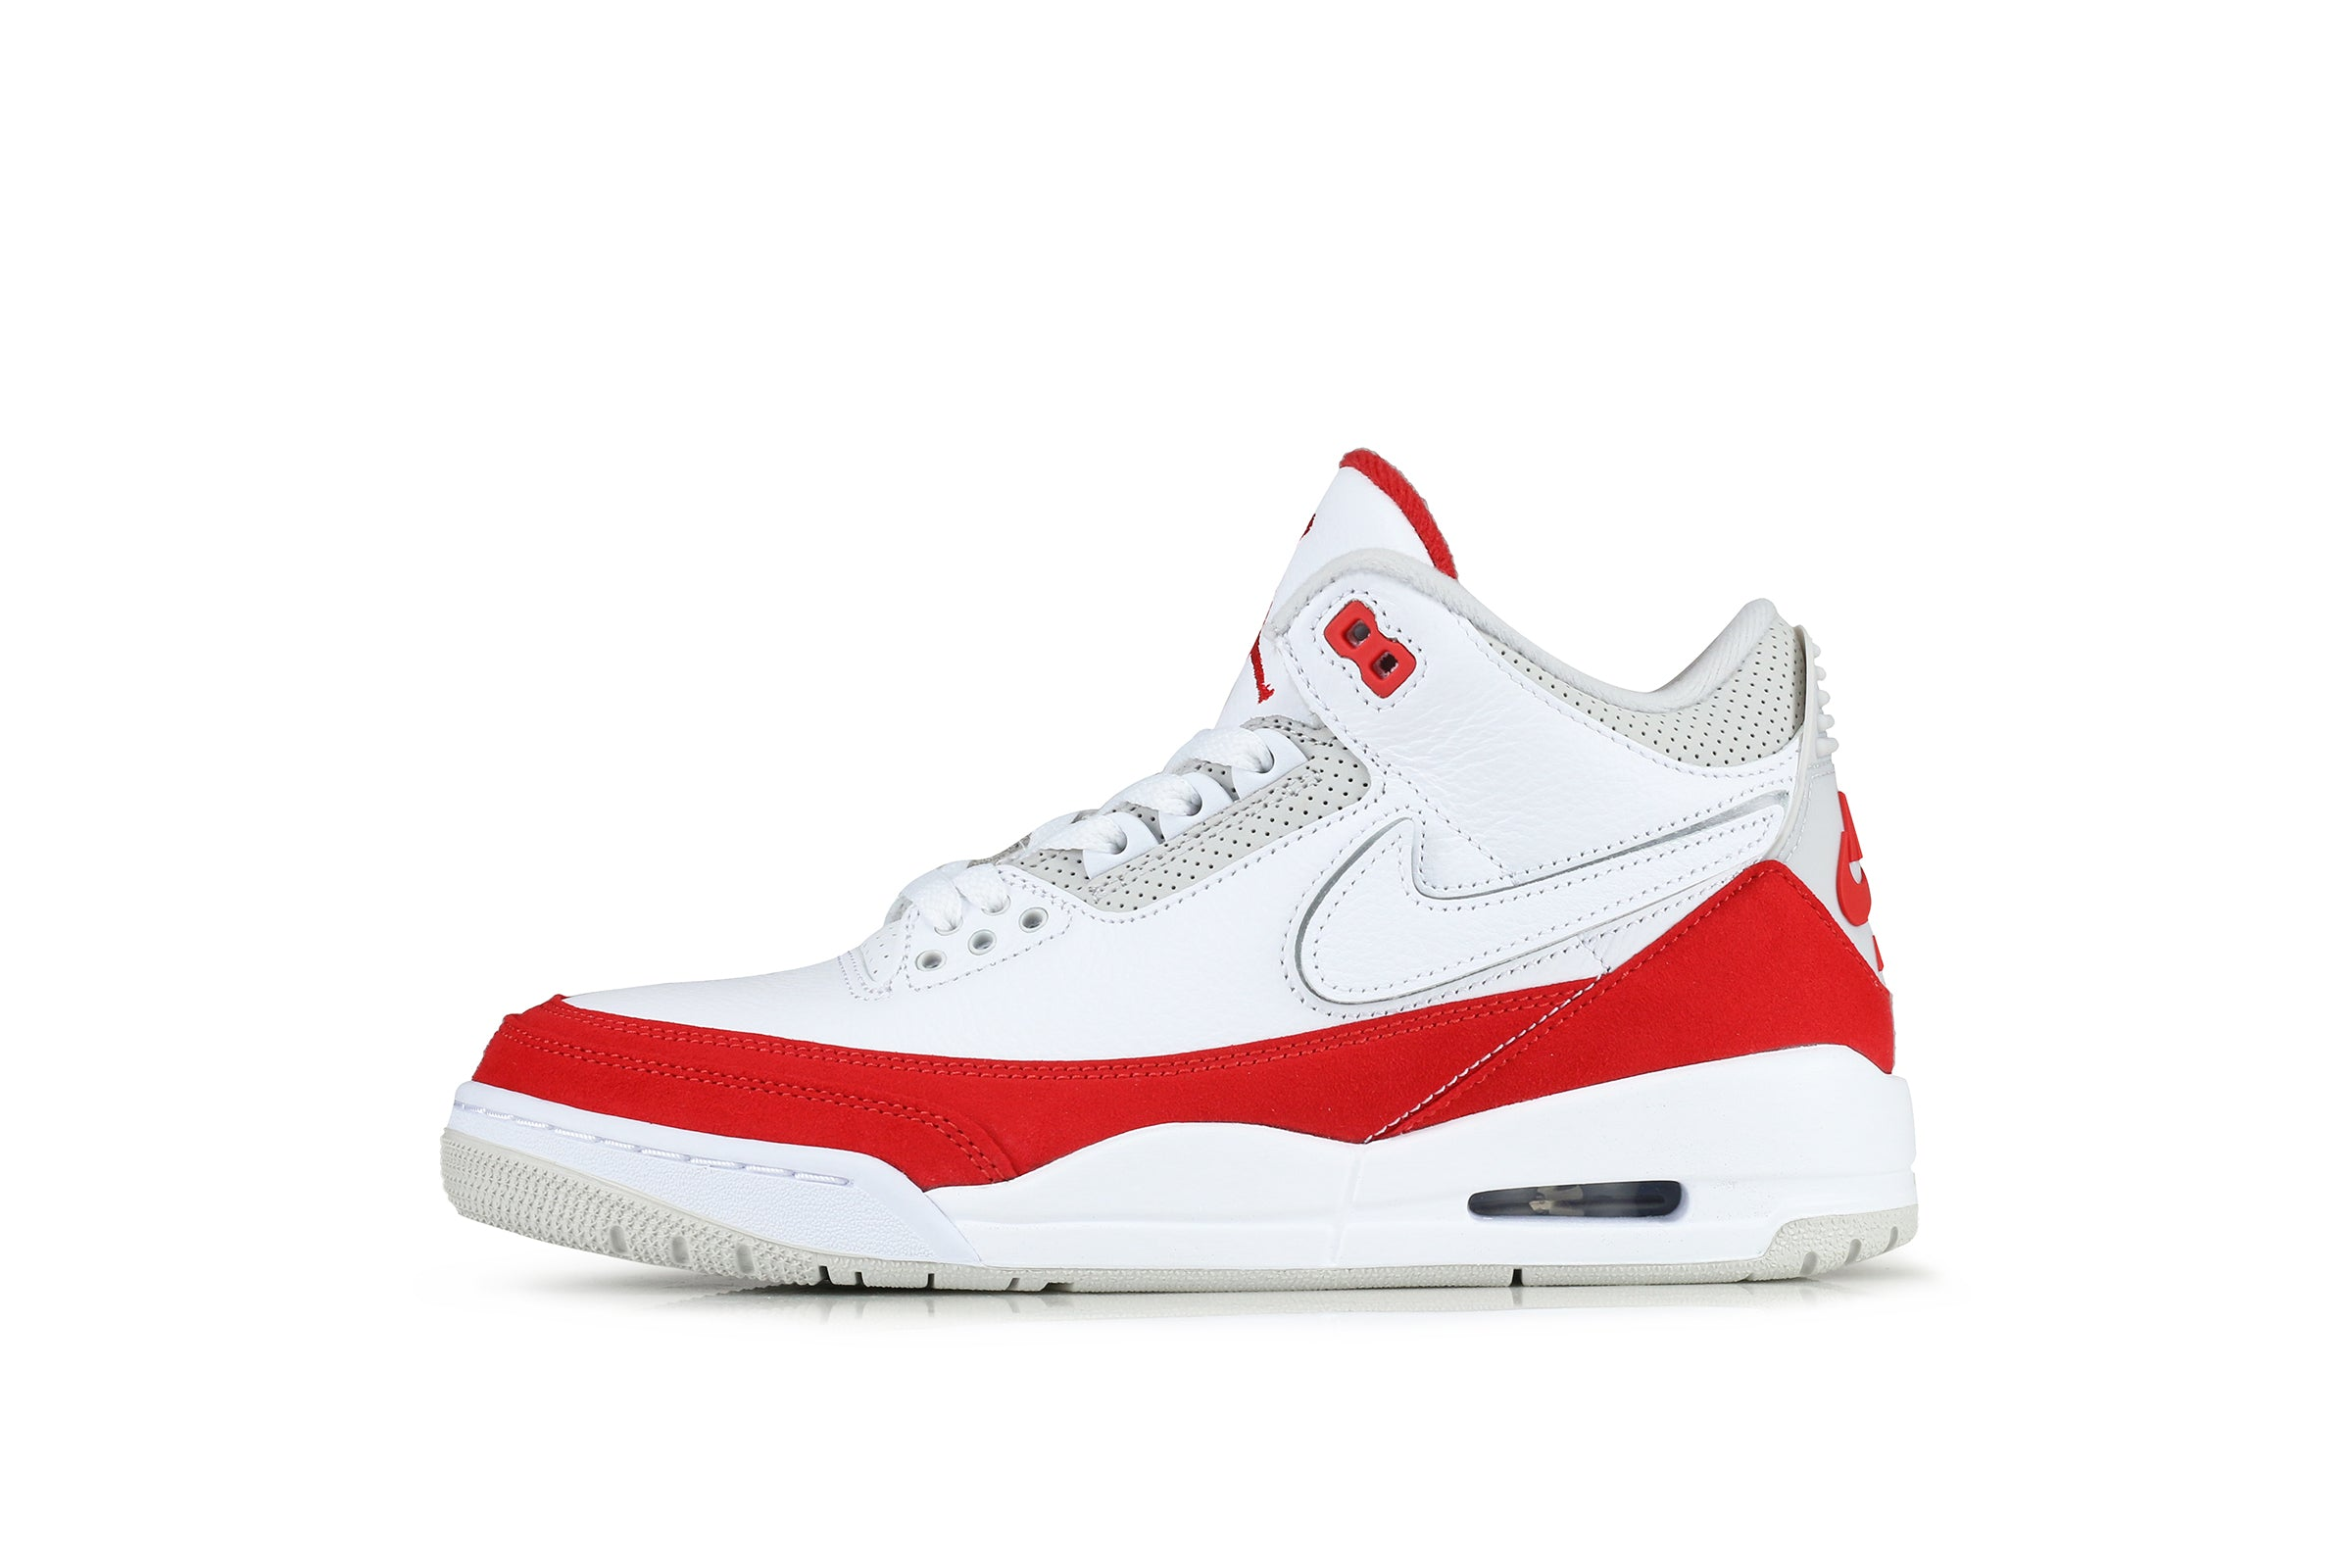 fcf90572c751 Nike Air Jordan 3 Retro TH SP NRG